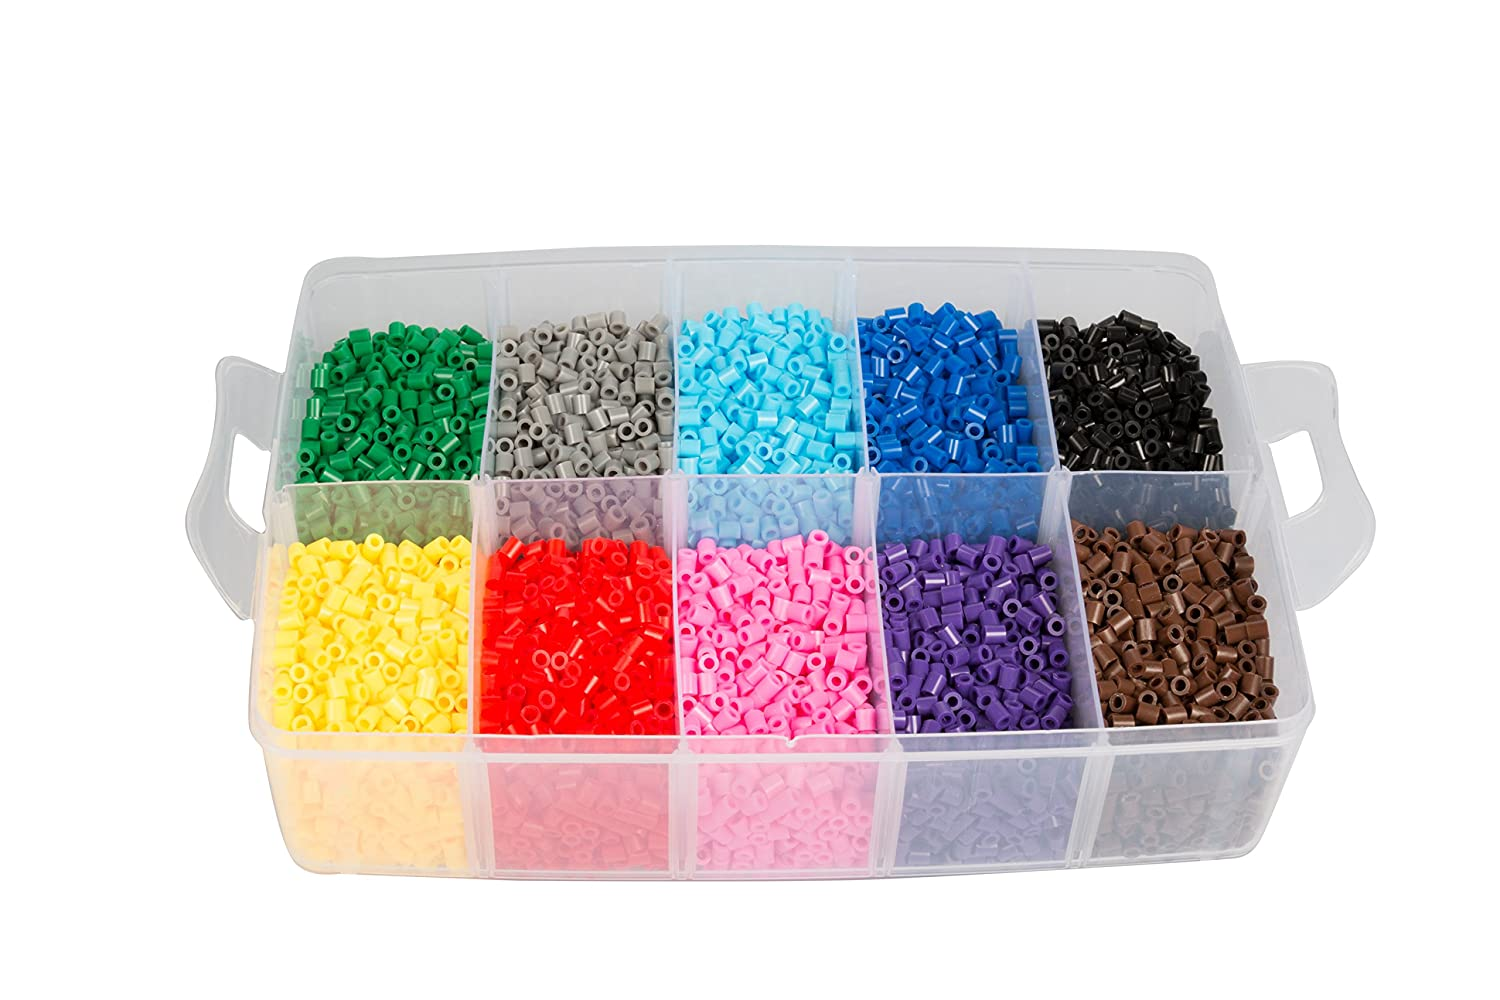 Details about 20,000 Fuse Beads - 20 colors (5 Glow in the Dark), Tweezers,  Peg Boards,